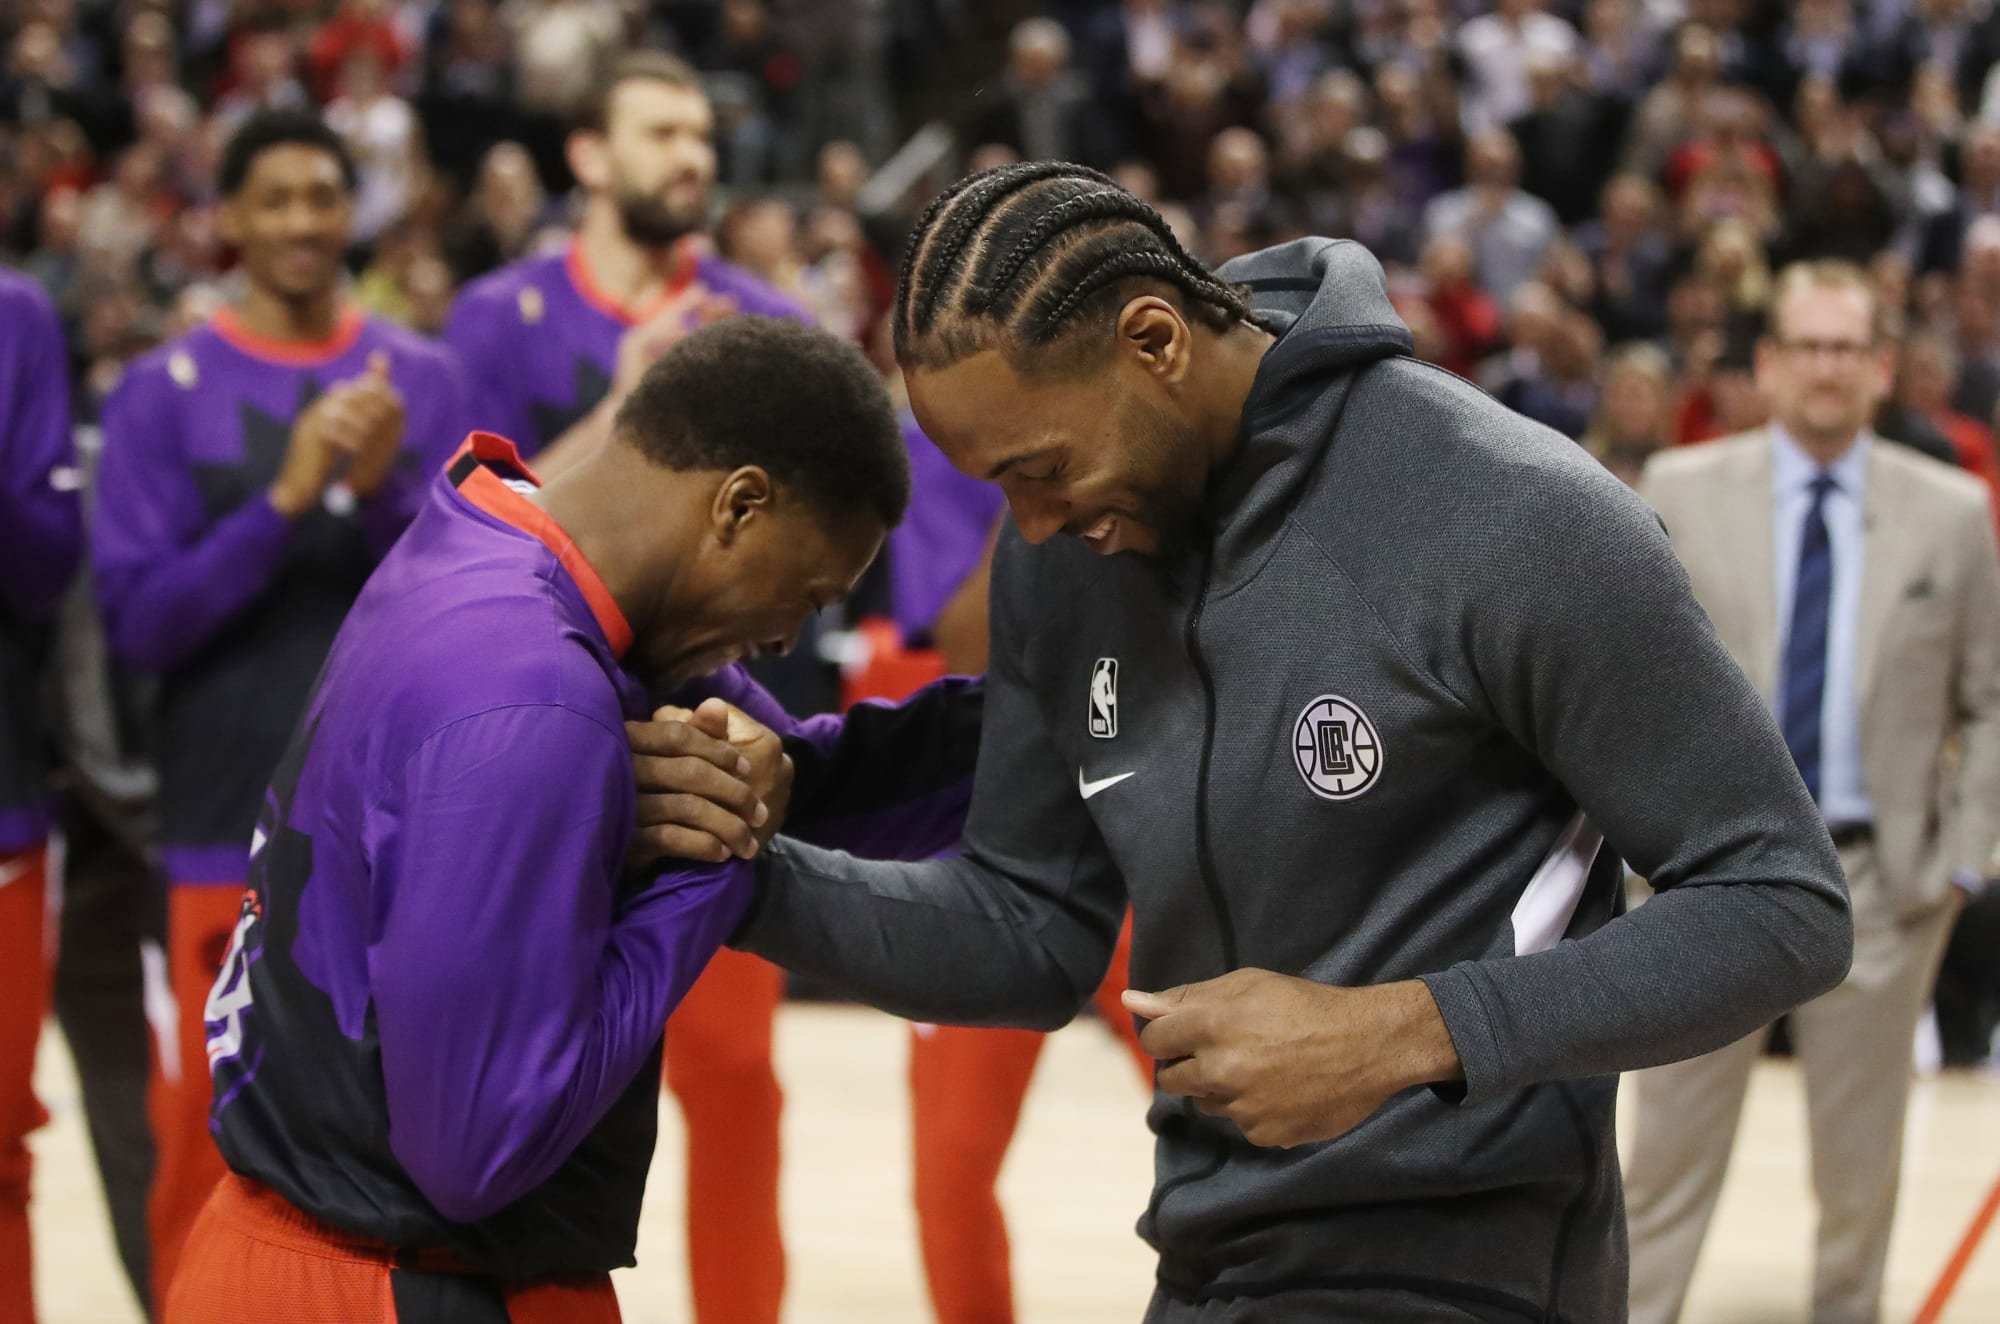 Toronto Raptors: Kawhi Leonard leaving Toronto was a huge mistake